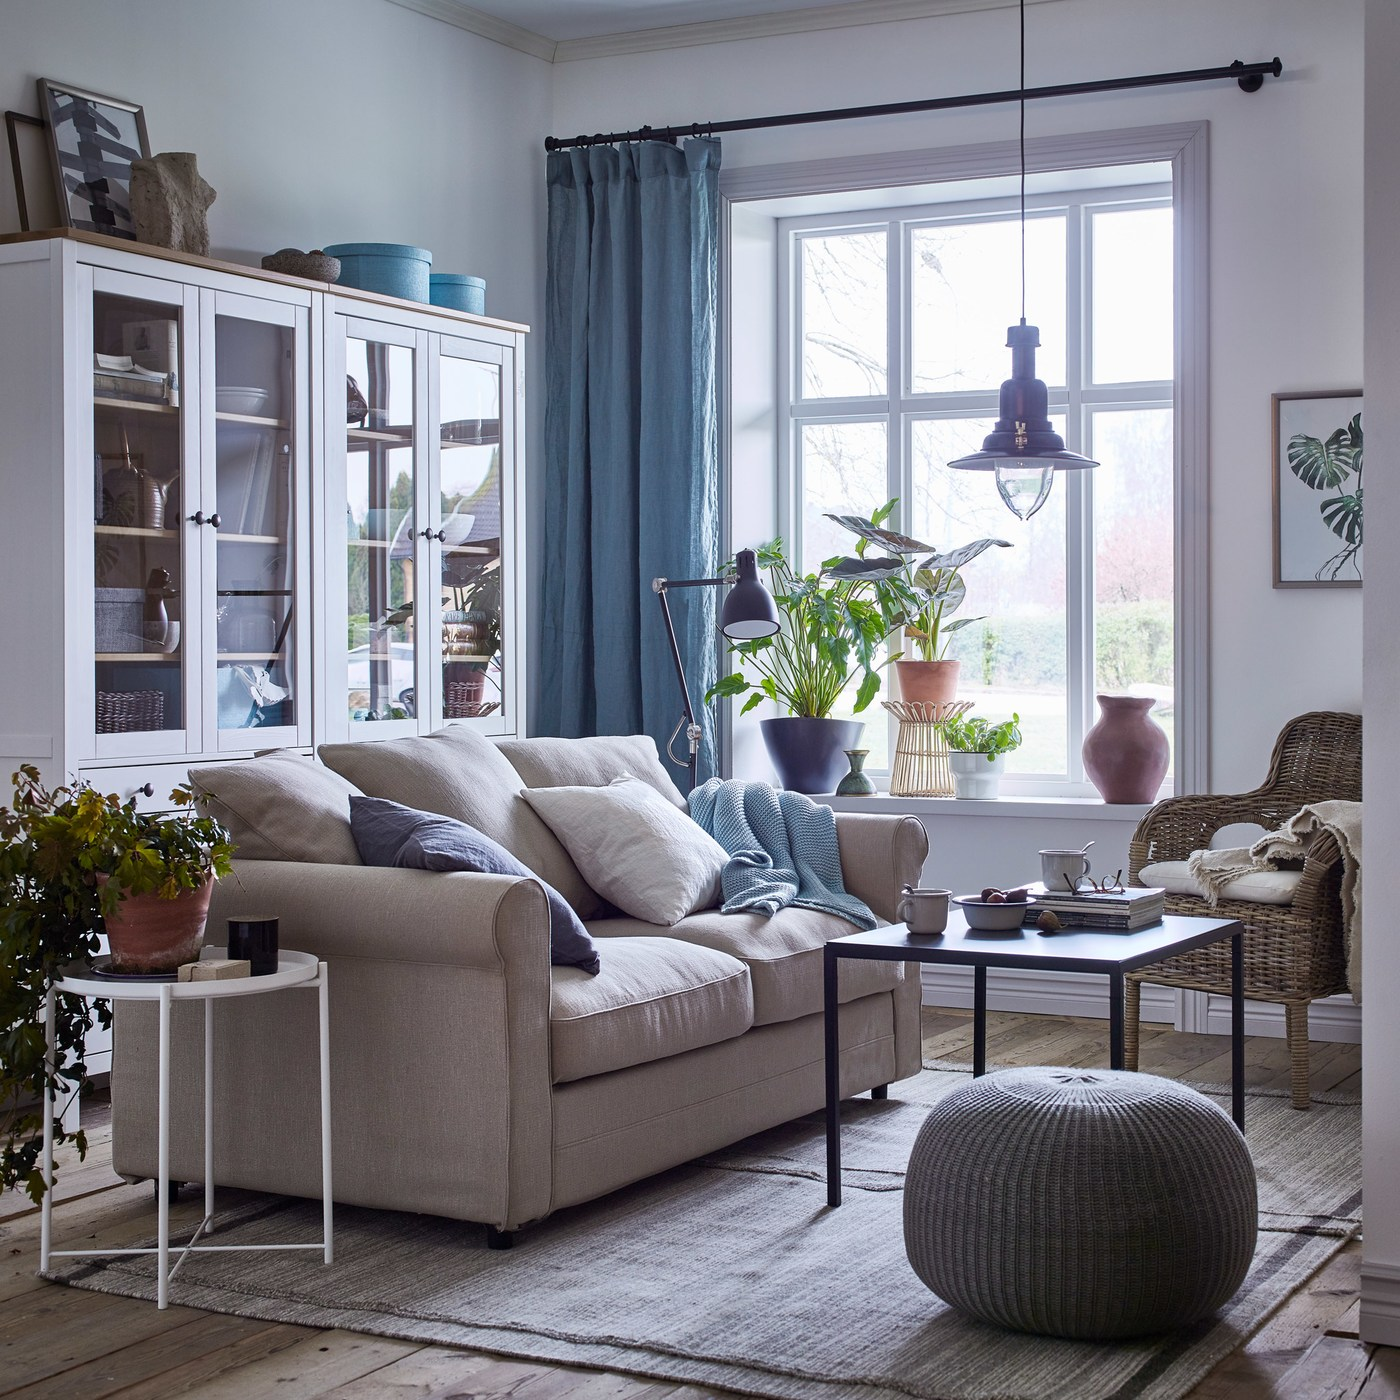 Blue And Beige Living Room: Enjoying The Best Moments Together